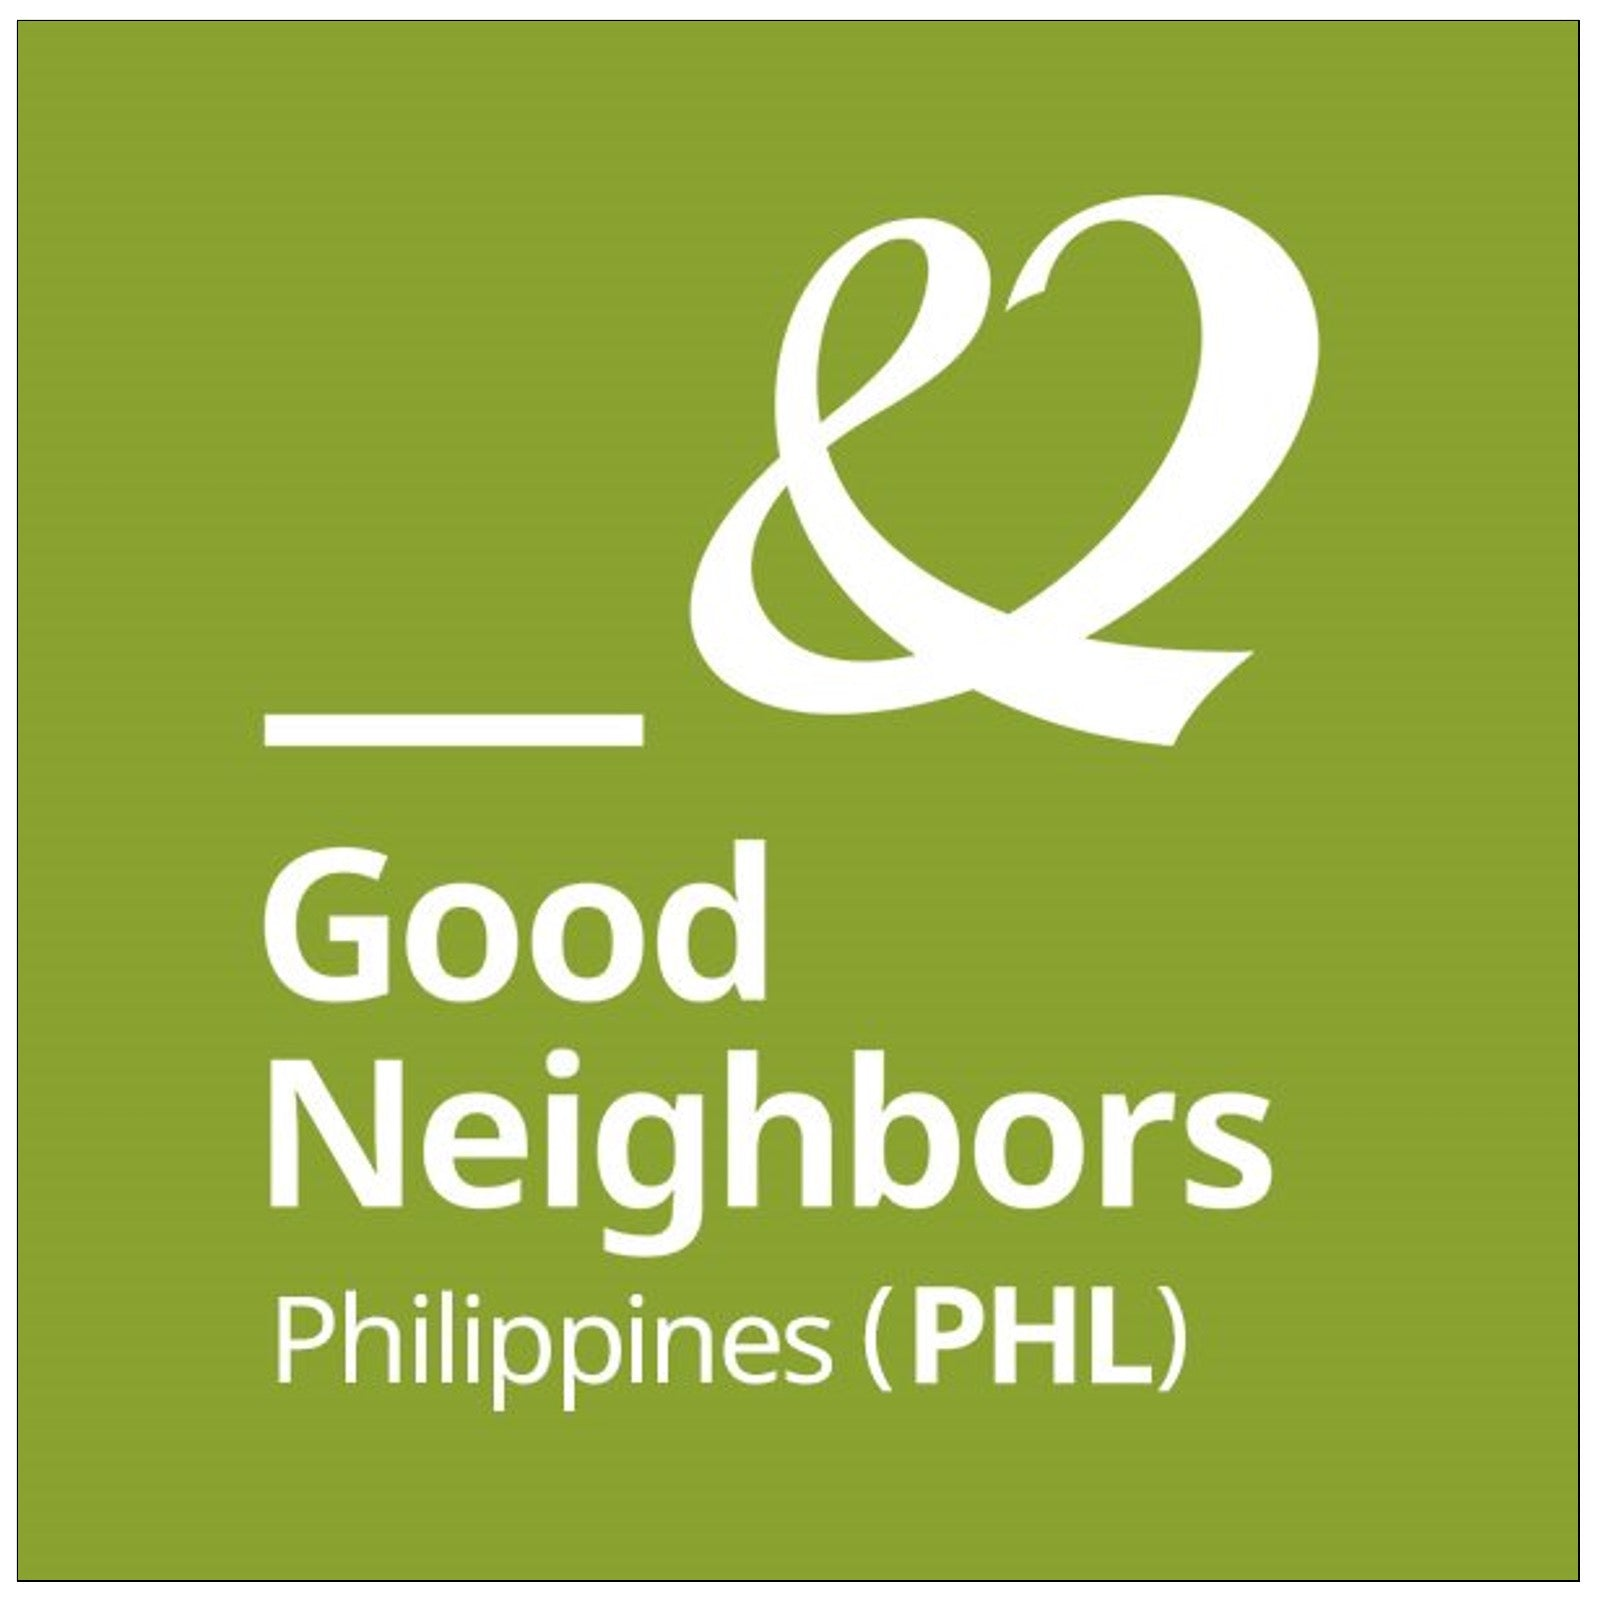 GOOD NEIGHBORS PHILIPPINES for Typhoon relief